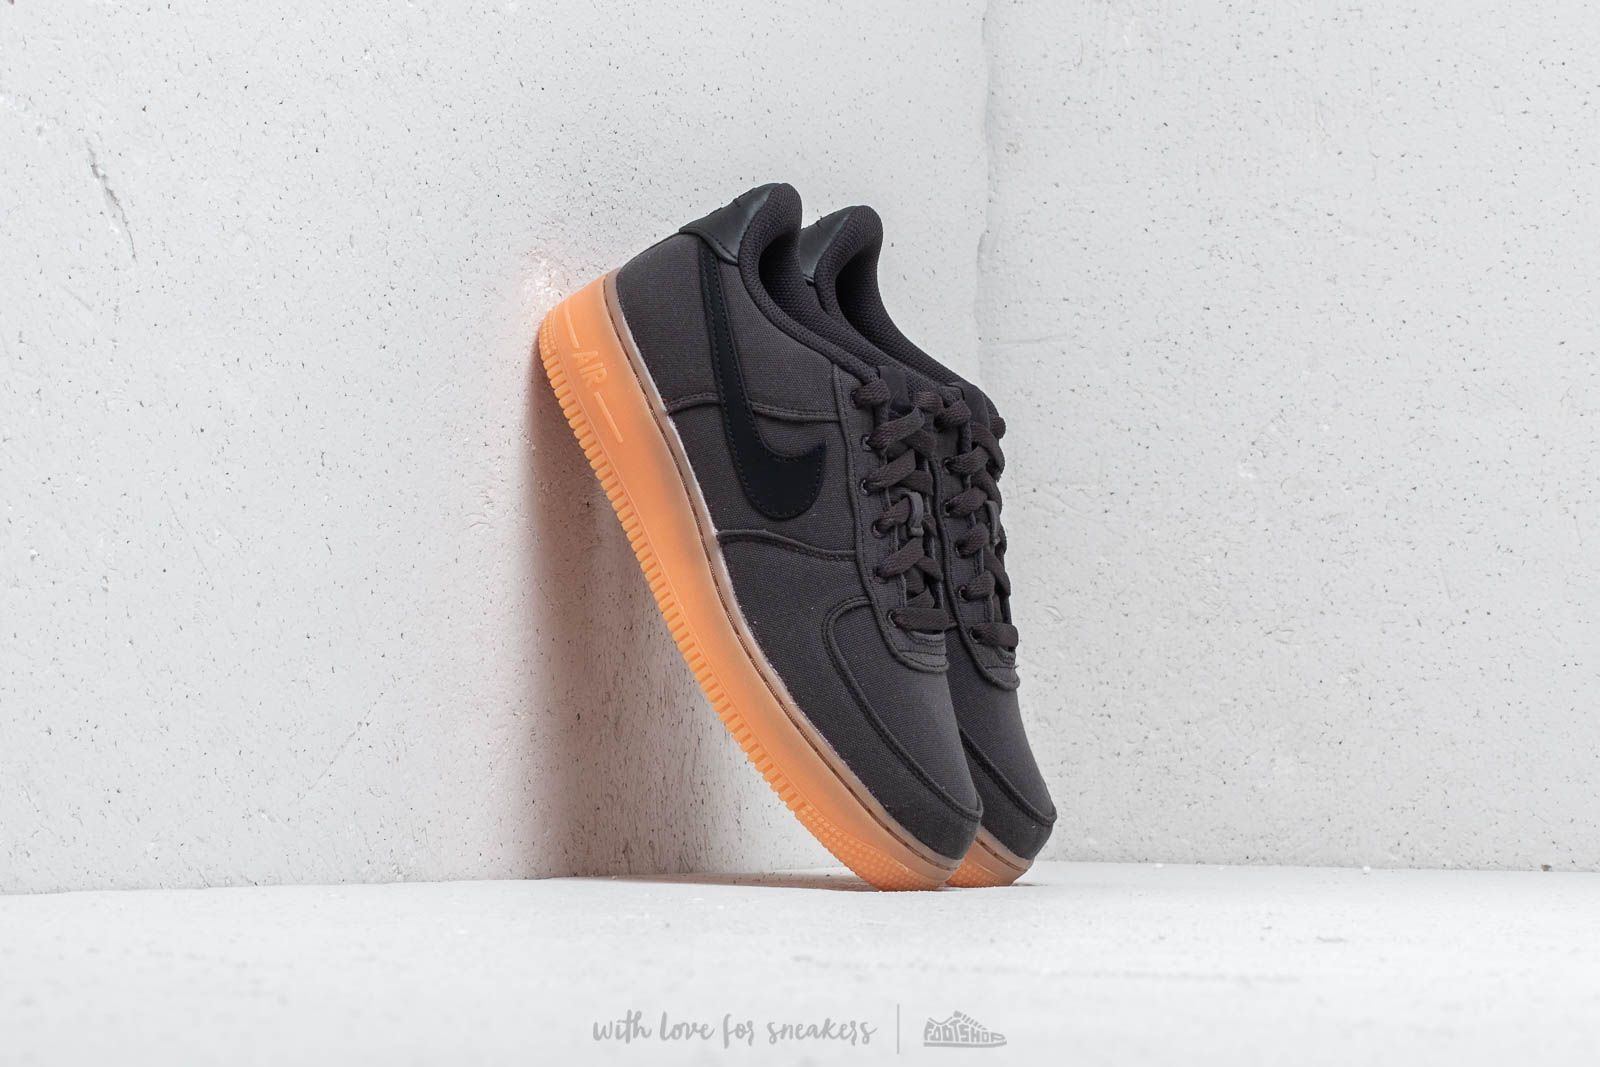 0f594f5e8497 Nike Air Force 1  07 LV8 Style Black  Black-Gum Med Brown